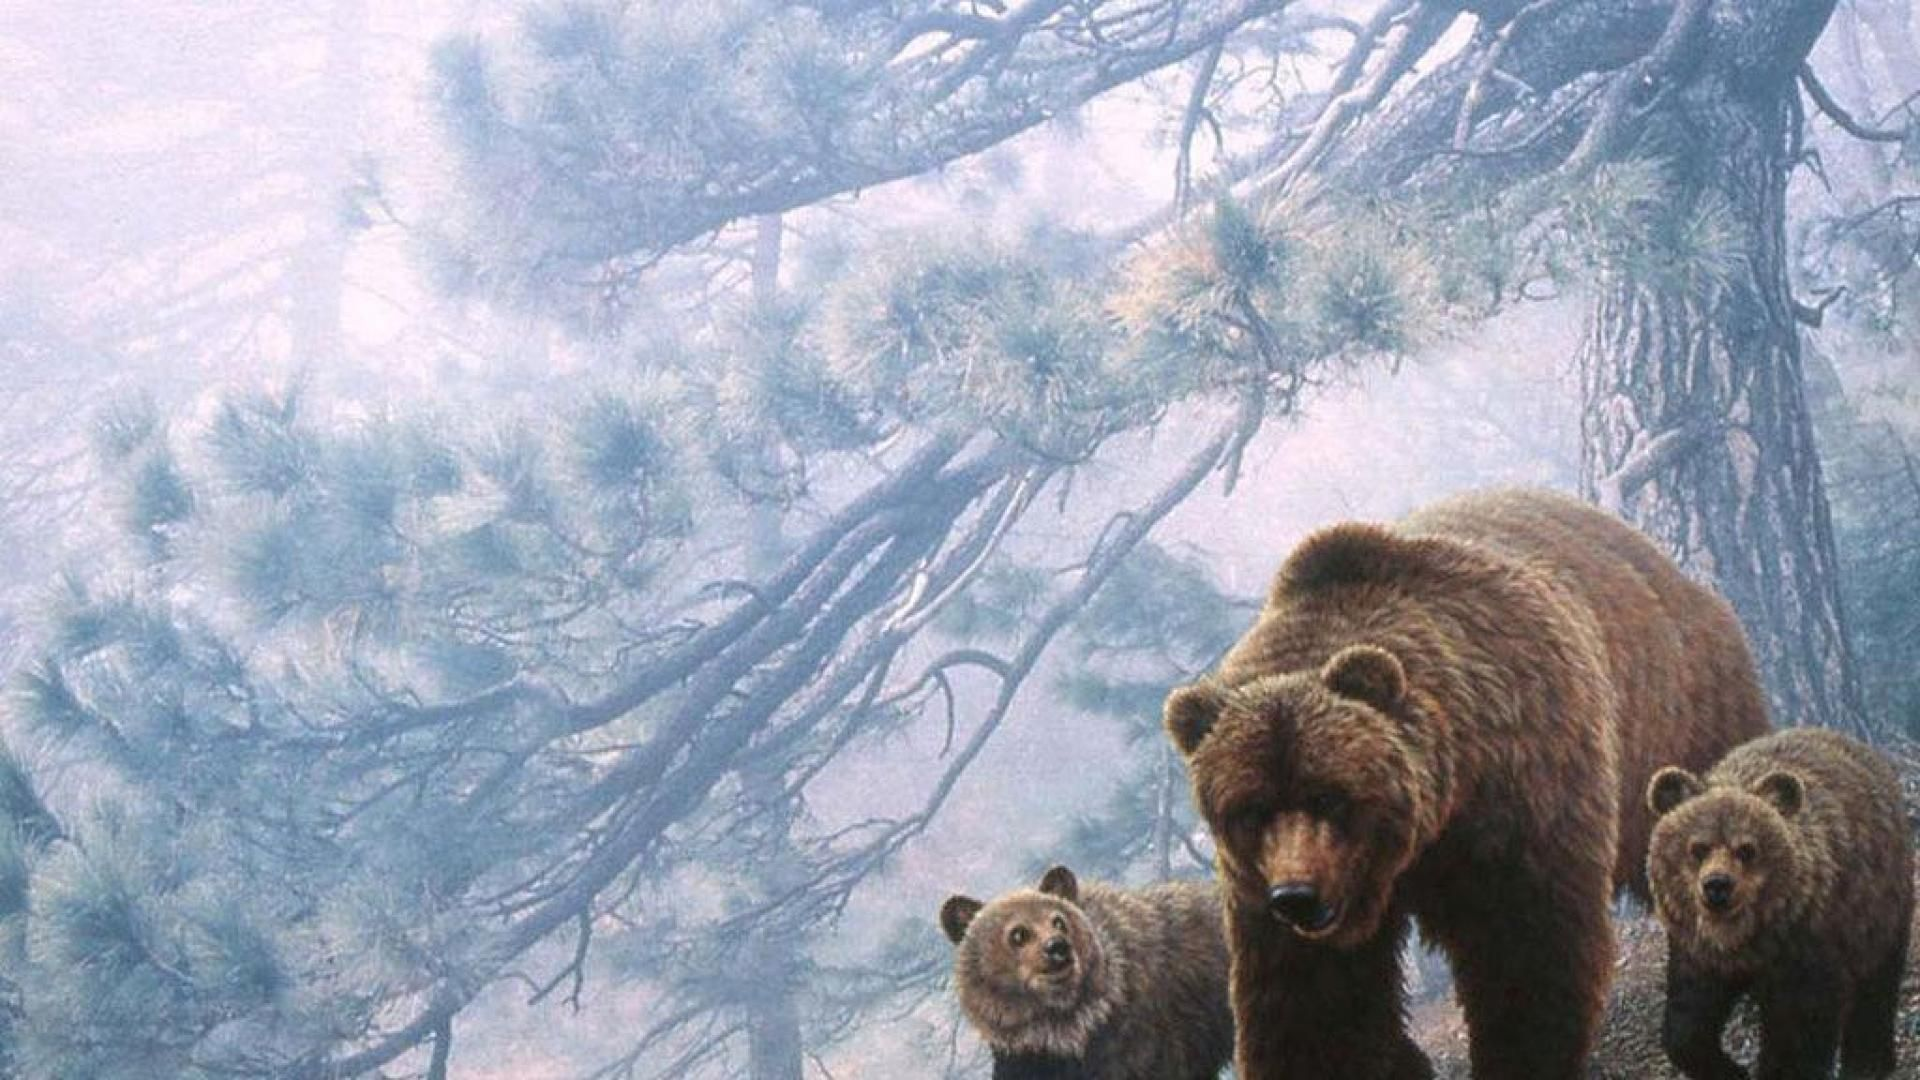 grizzly bear wallpaper | ahsan | pinterest | bear wallpaper